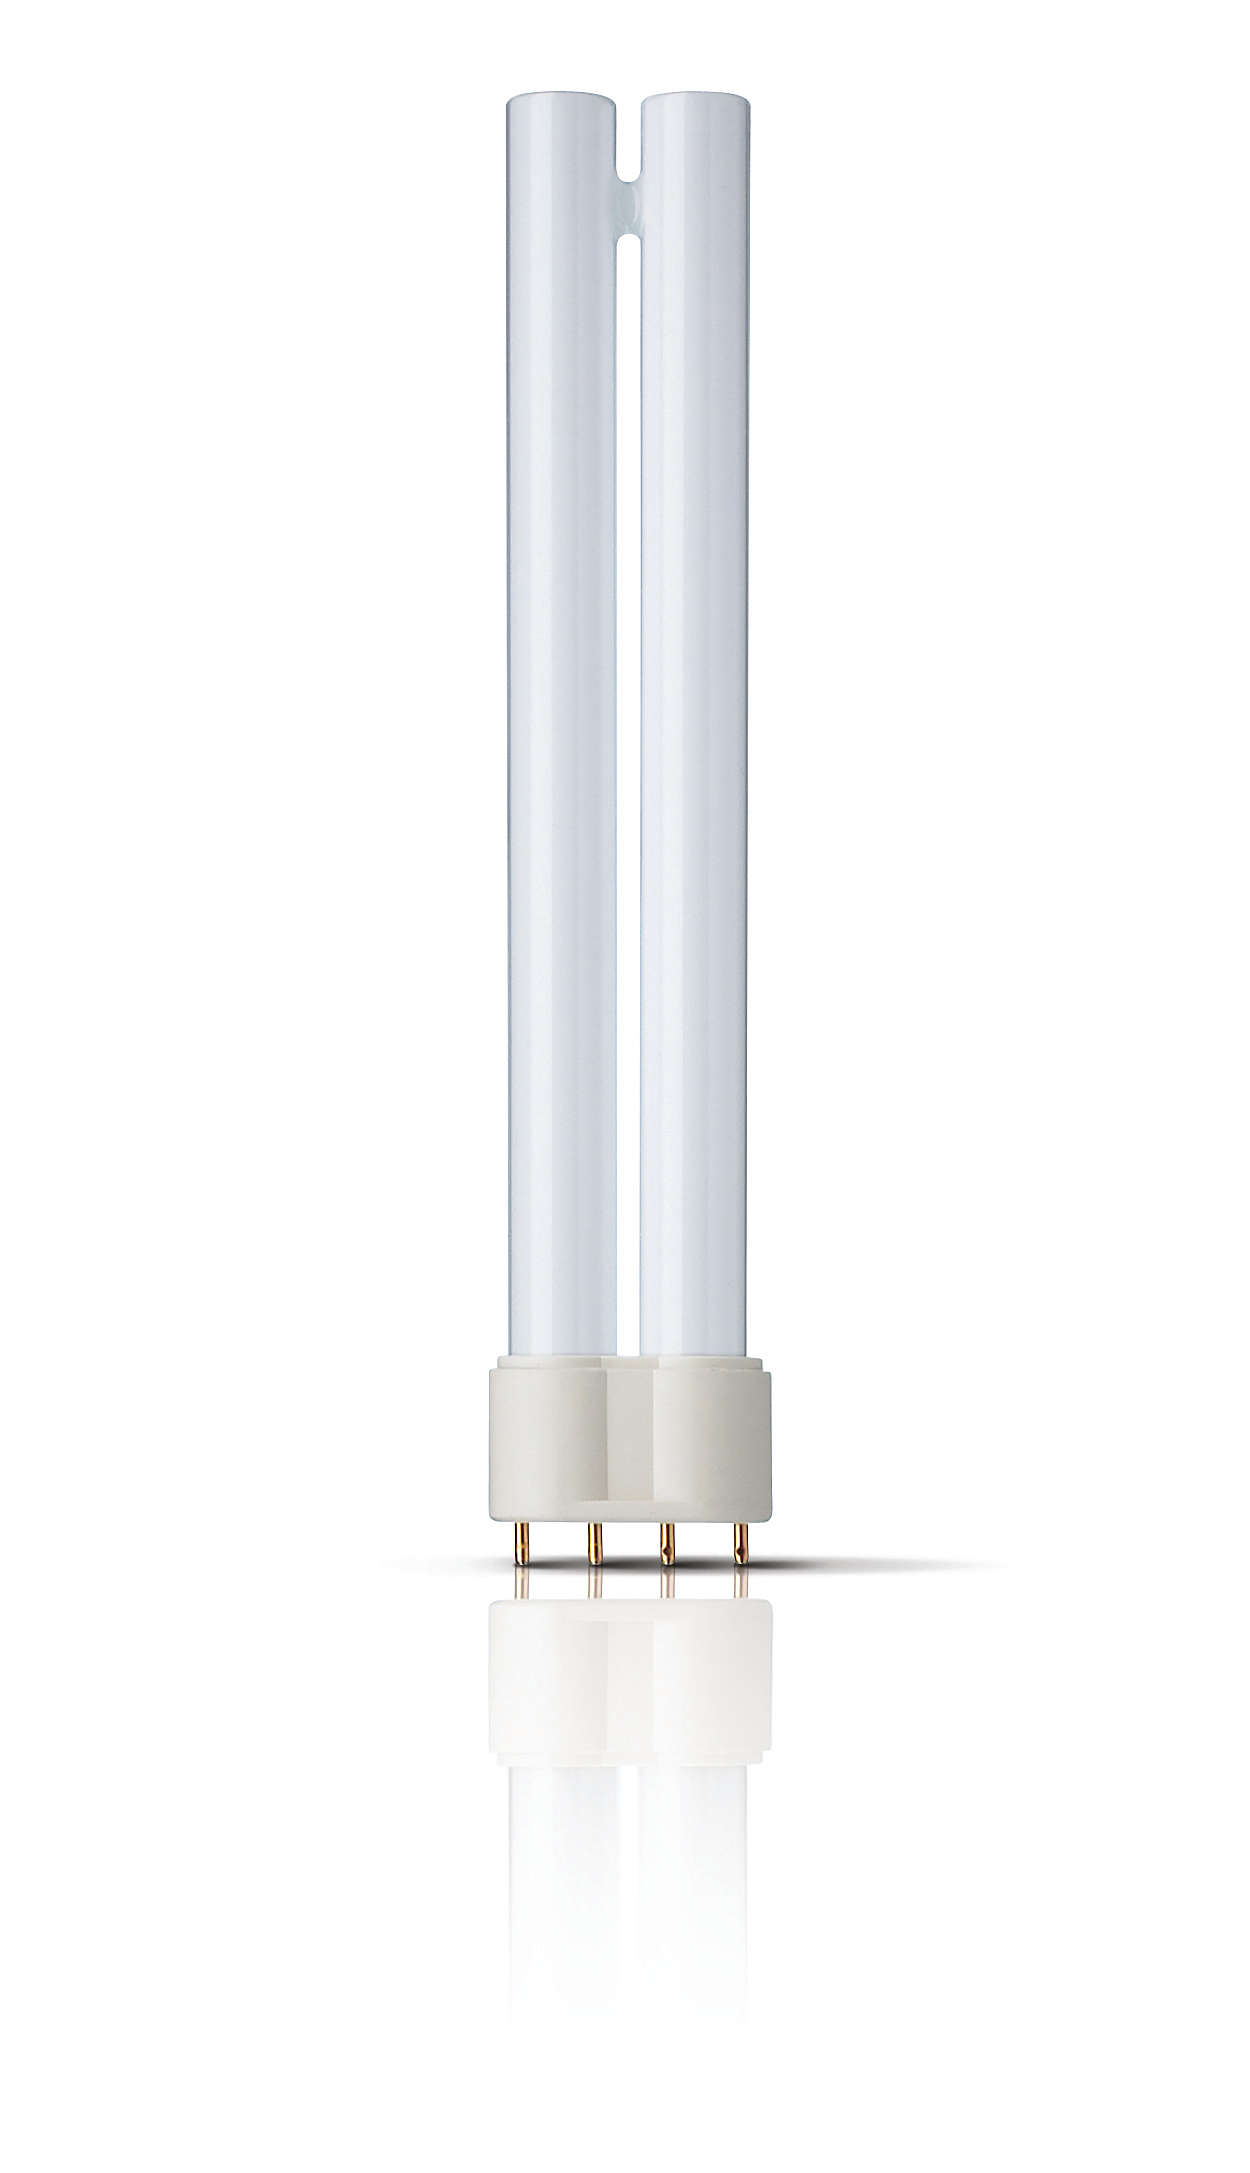 UVB Narrowband PL-L/PL-S – most effective phototherapy lamp plus design freedom